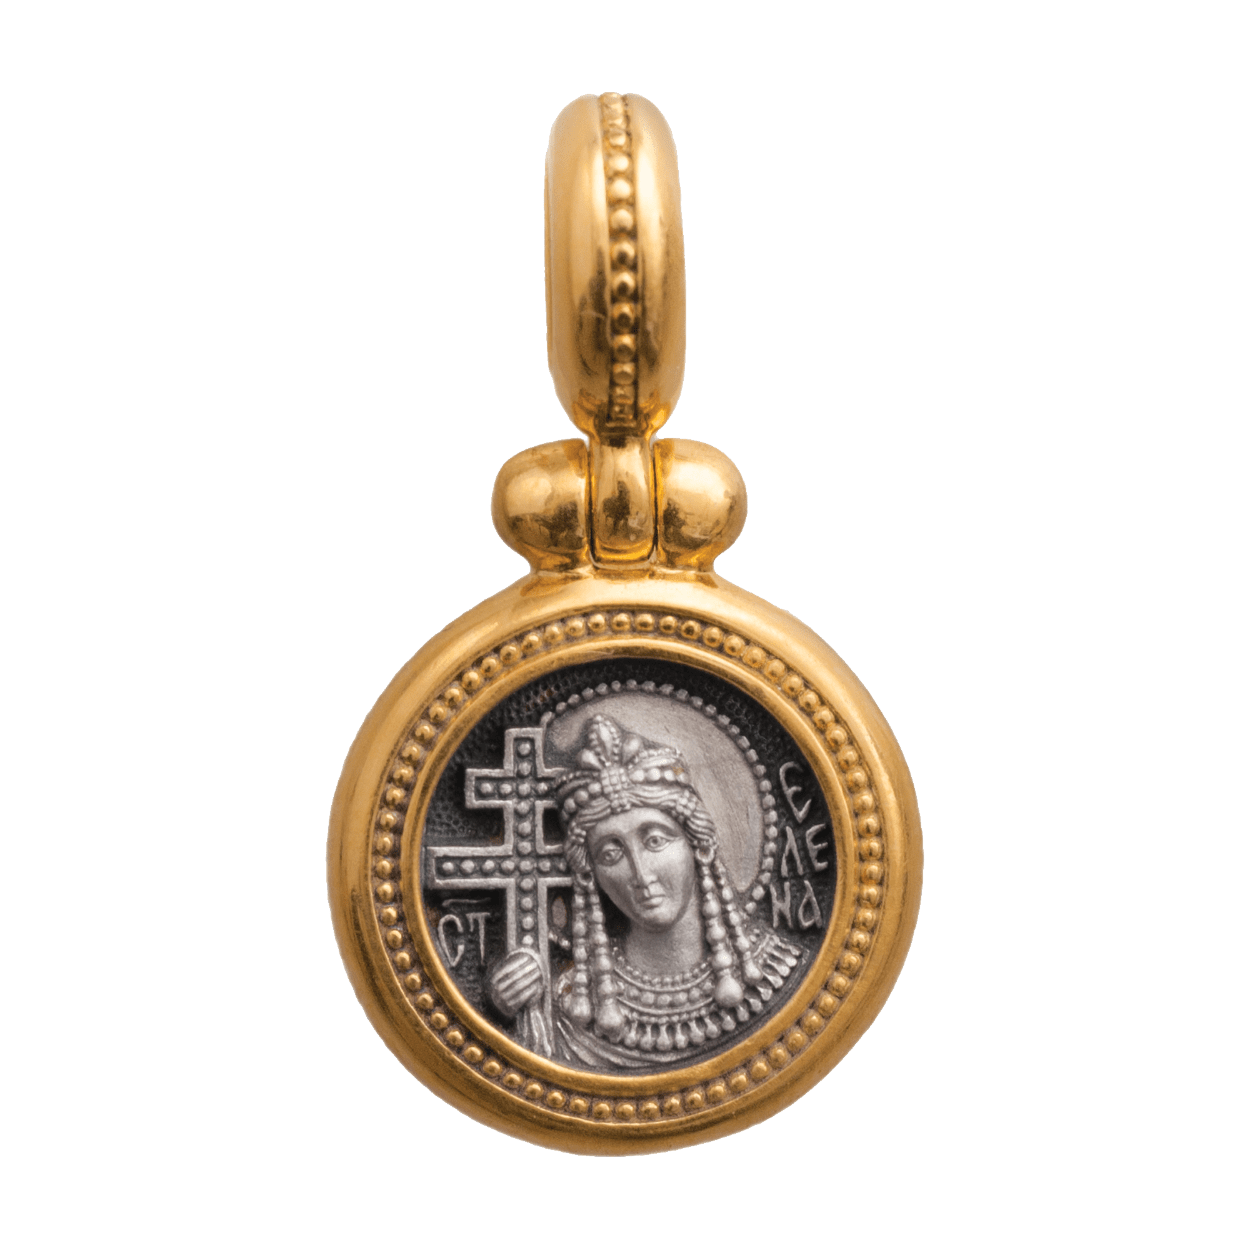 Russian-Orthodox-silver-icon-pendant-SAINT-EMPRESS-HELENA-EQUAL-OF-THE-APOSTLES-Master-Jeweler-Fedorov